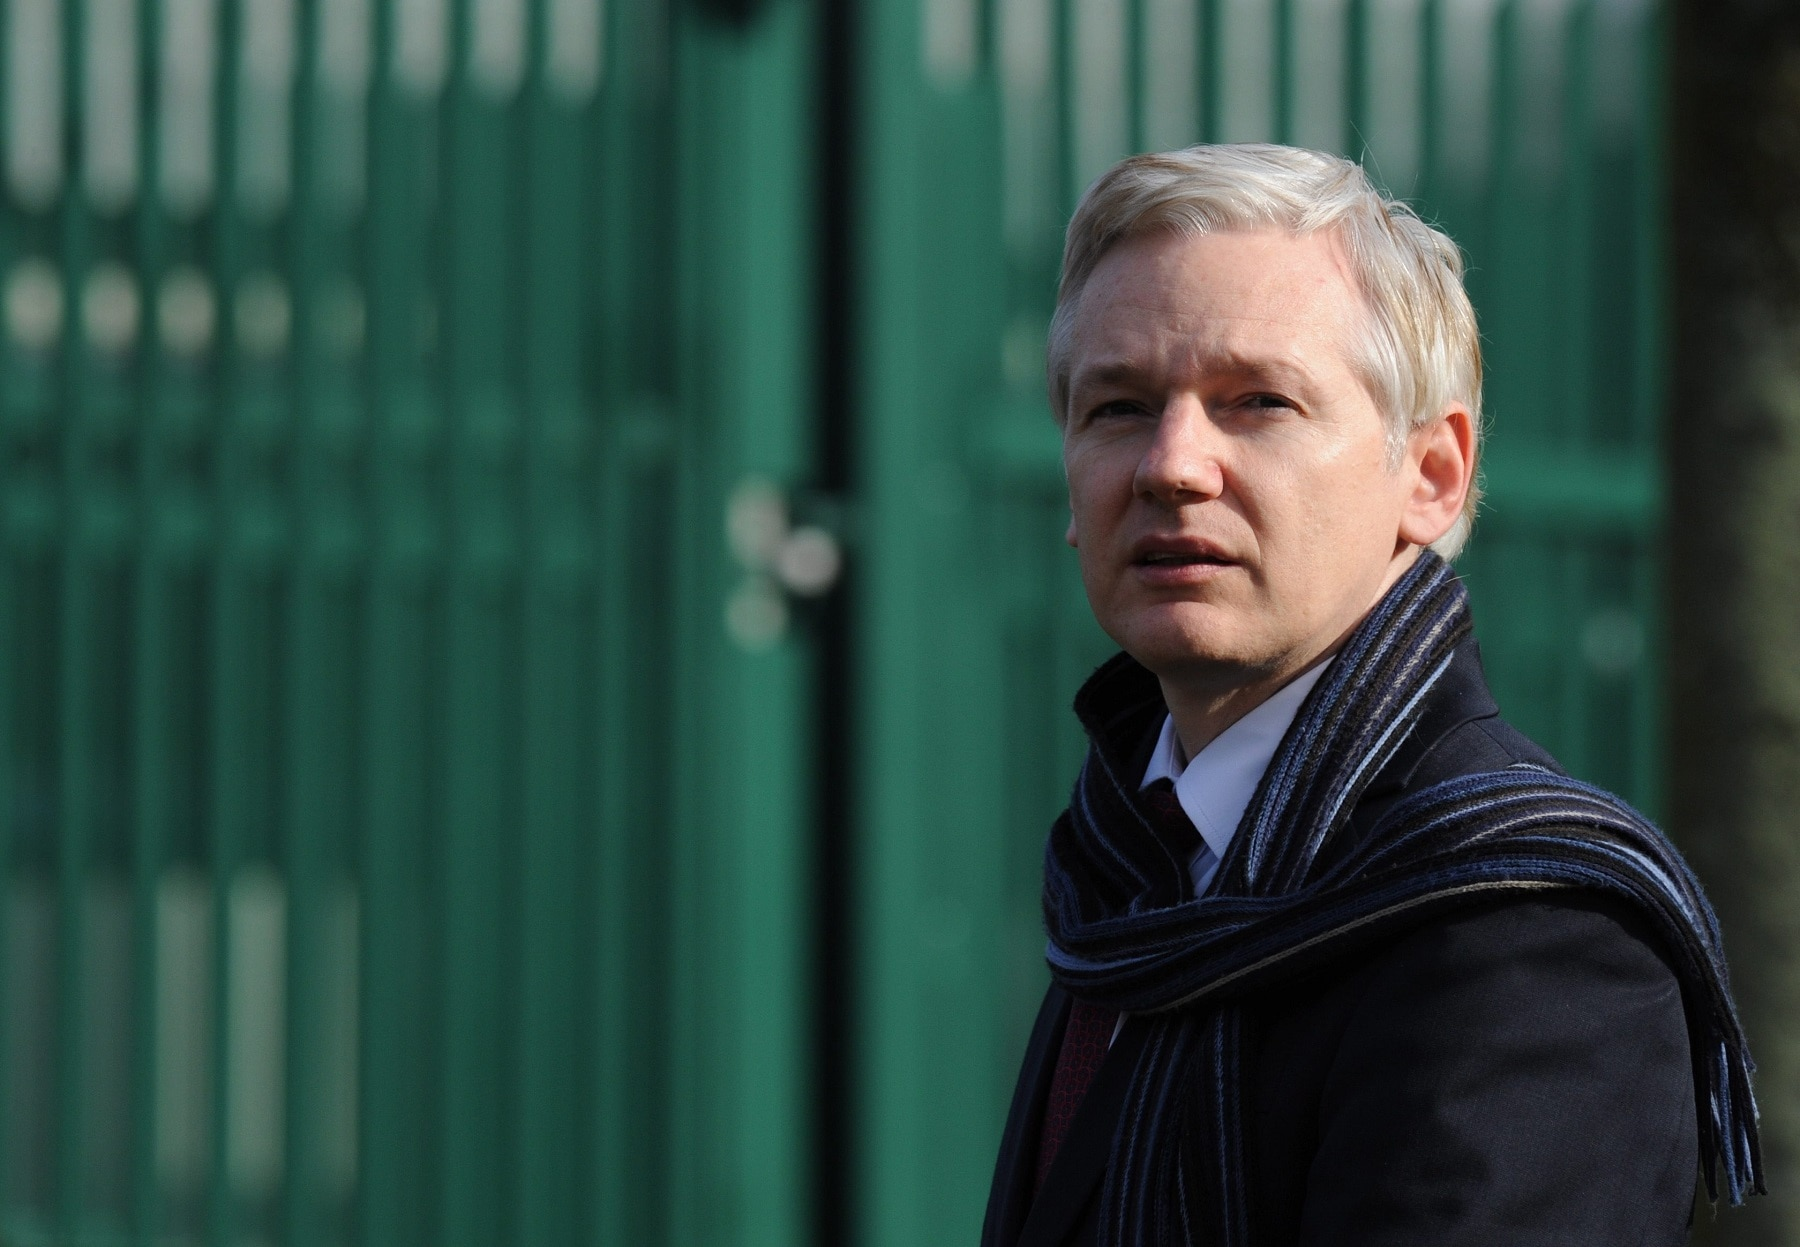 Julian Assange speaks to the media outside Belmarsh Magistrates court, after a judge has decided he has to face extradition  to Sweden, in London Great Britain on 24 February 2011.  EPA/FACUNDO ARRIZABALAGA